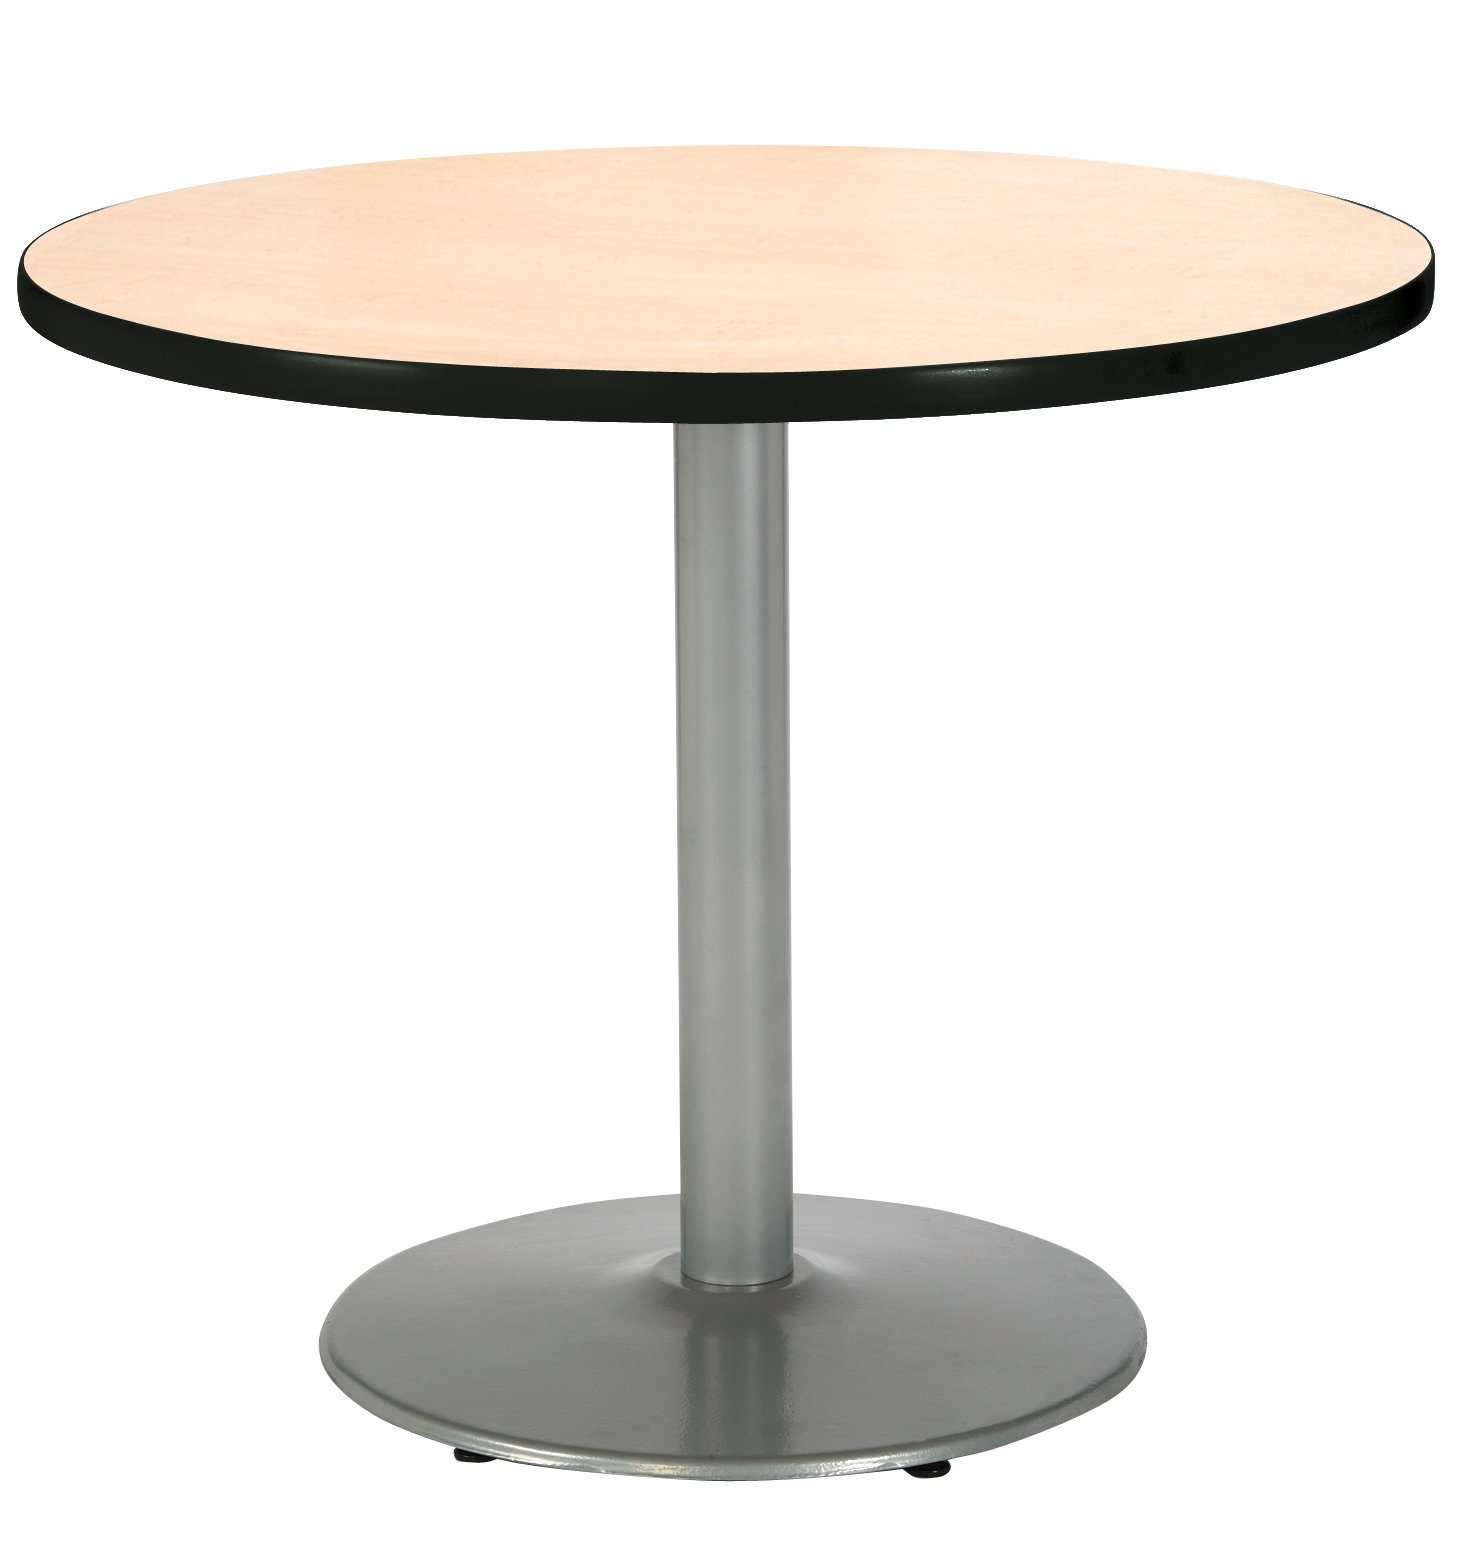 KFI Seating Round Pedestal Table with Round Silver Base, Commercial Grade, 36-Inch, Natural Laminate, Made in the USA by KFI Seating